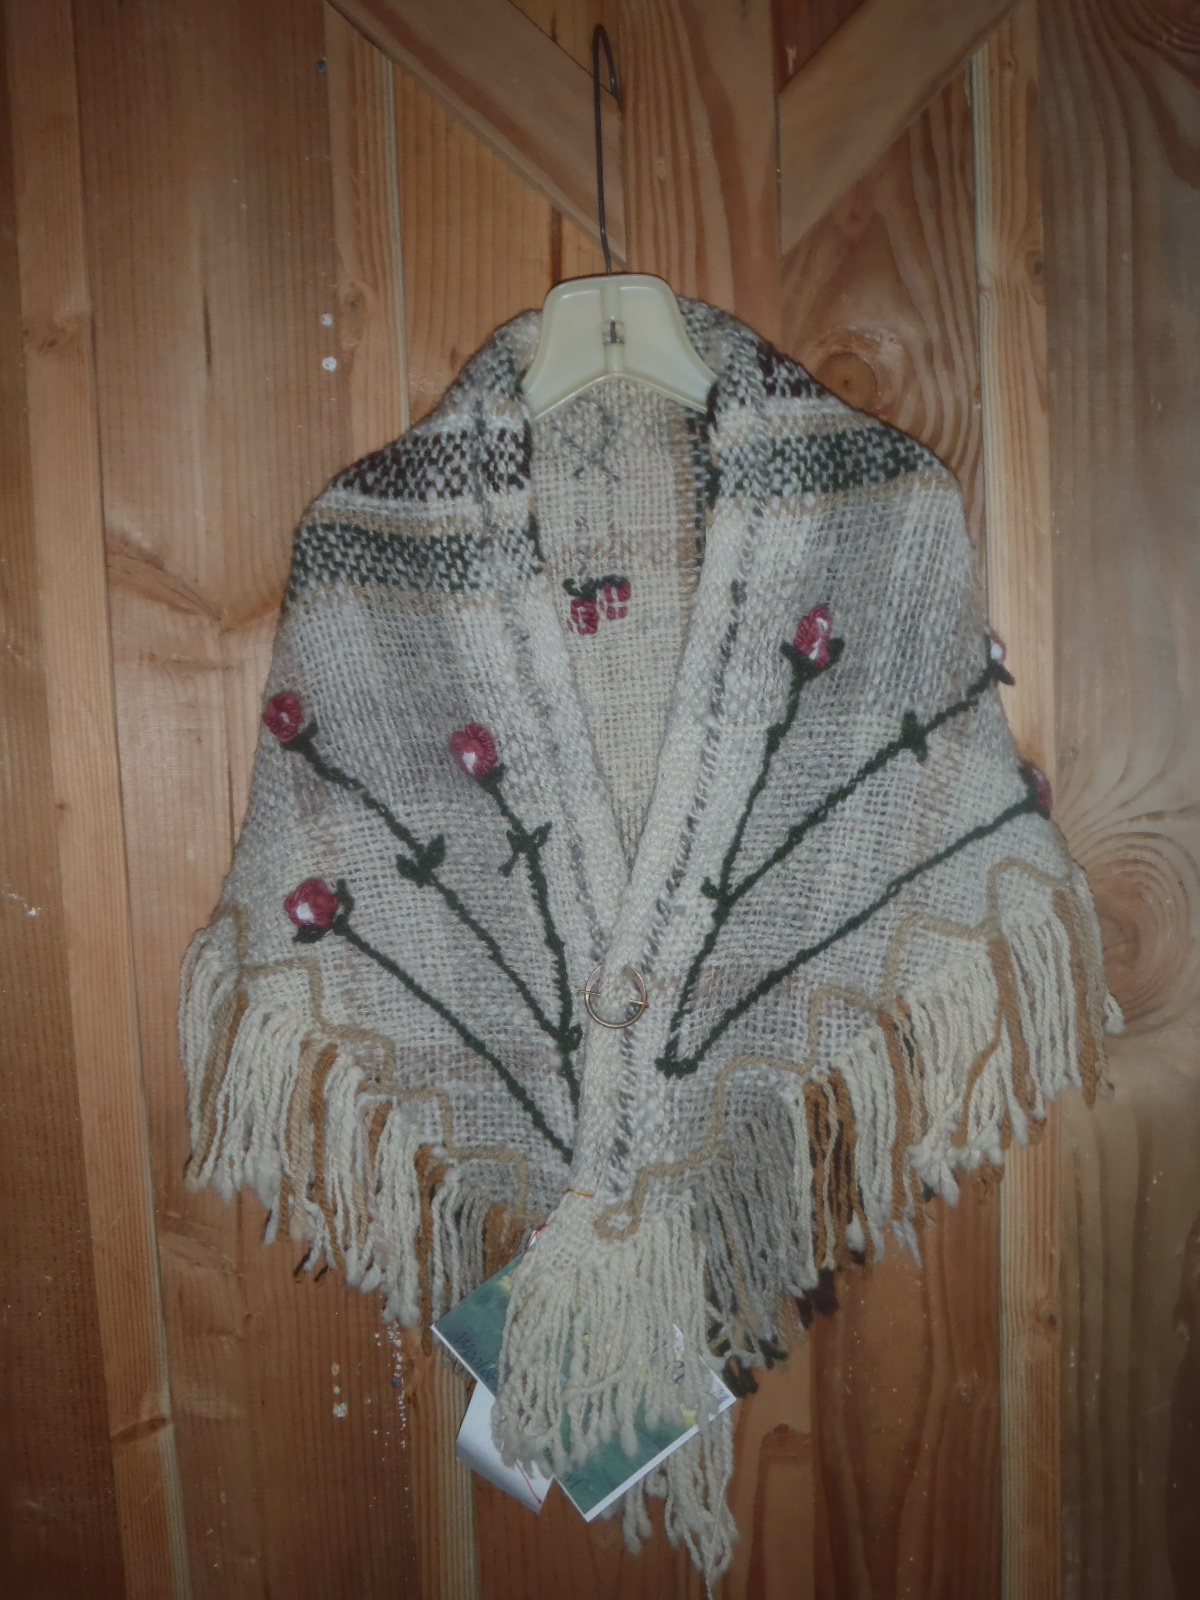 Embroidered rose bud shawl.